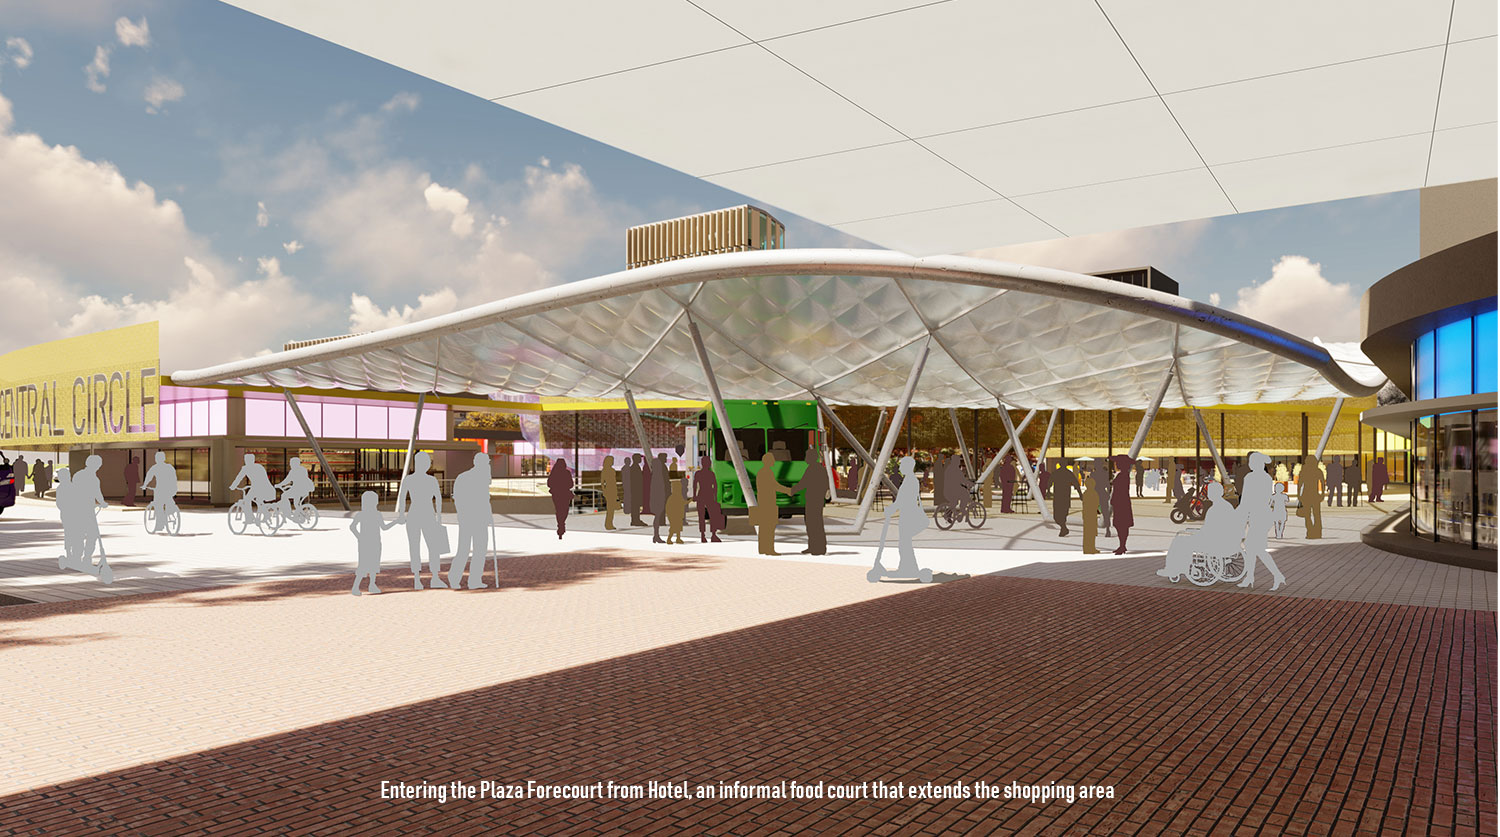 The Plaza Forecourt extends the shopping area to the hotel entry. University of Arkansas Community Design Center}